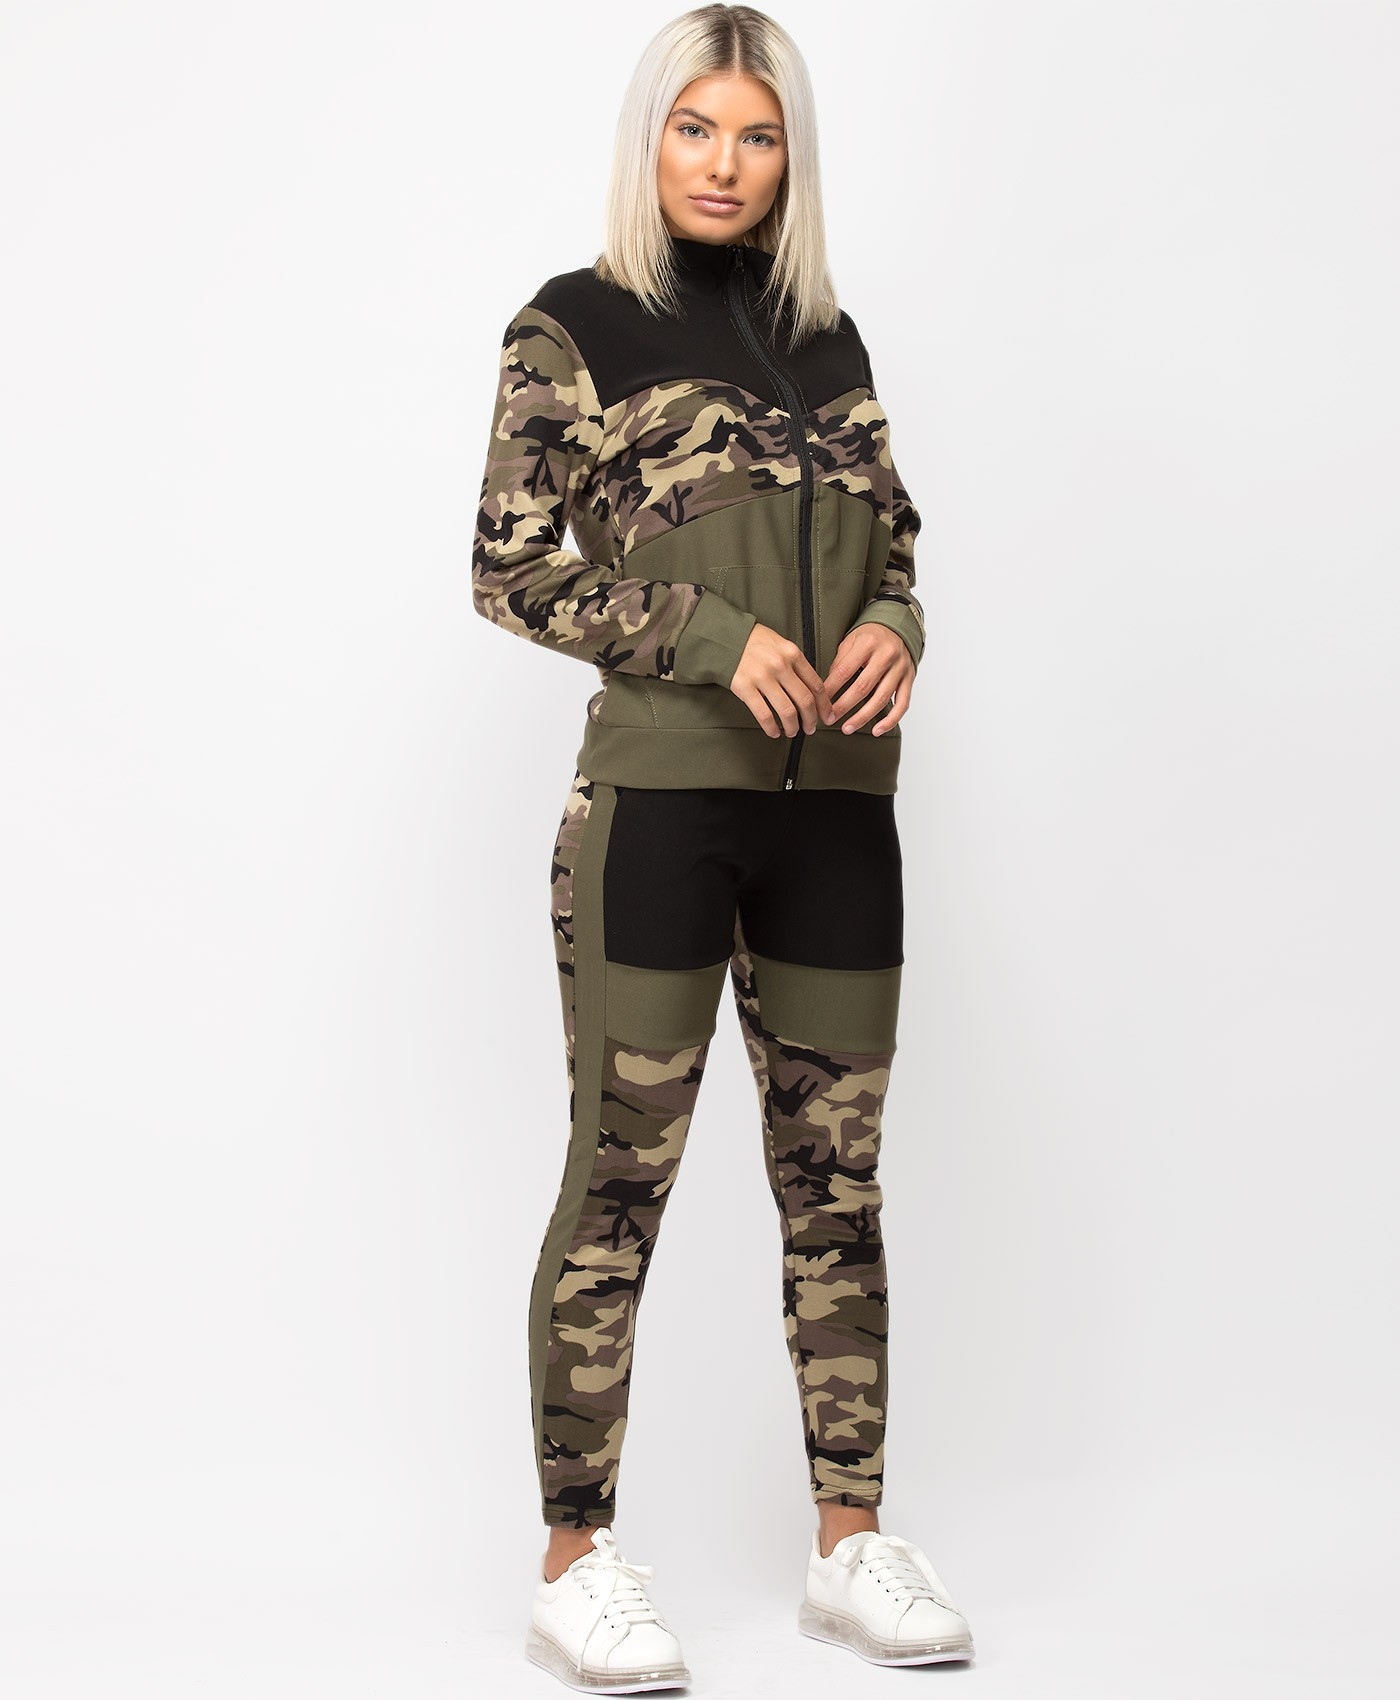 Khaki-Camouflage-Colour-Block-Zipper-&-Joggers-Loungewear-Set-2